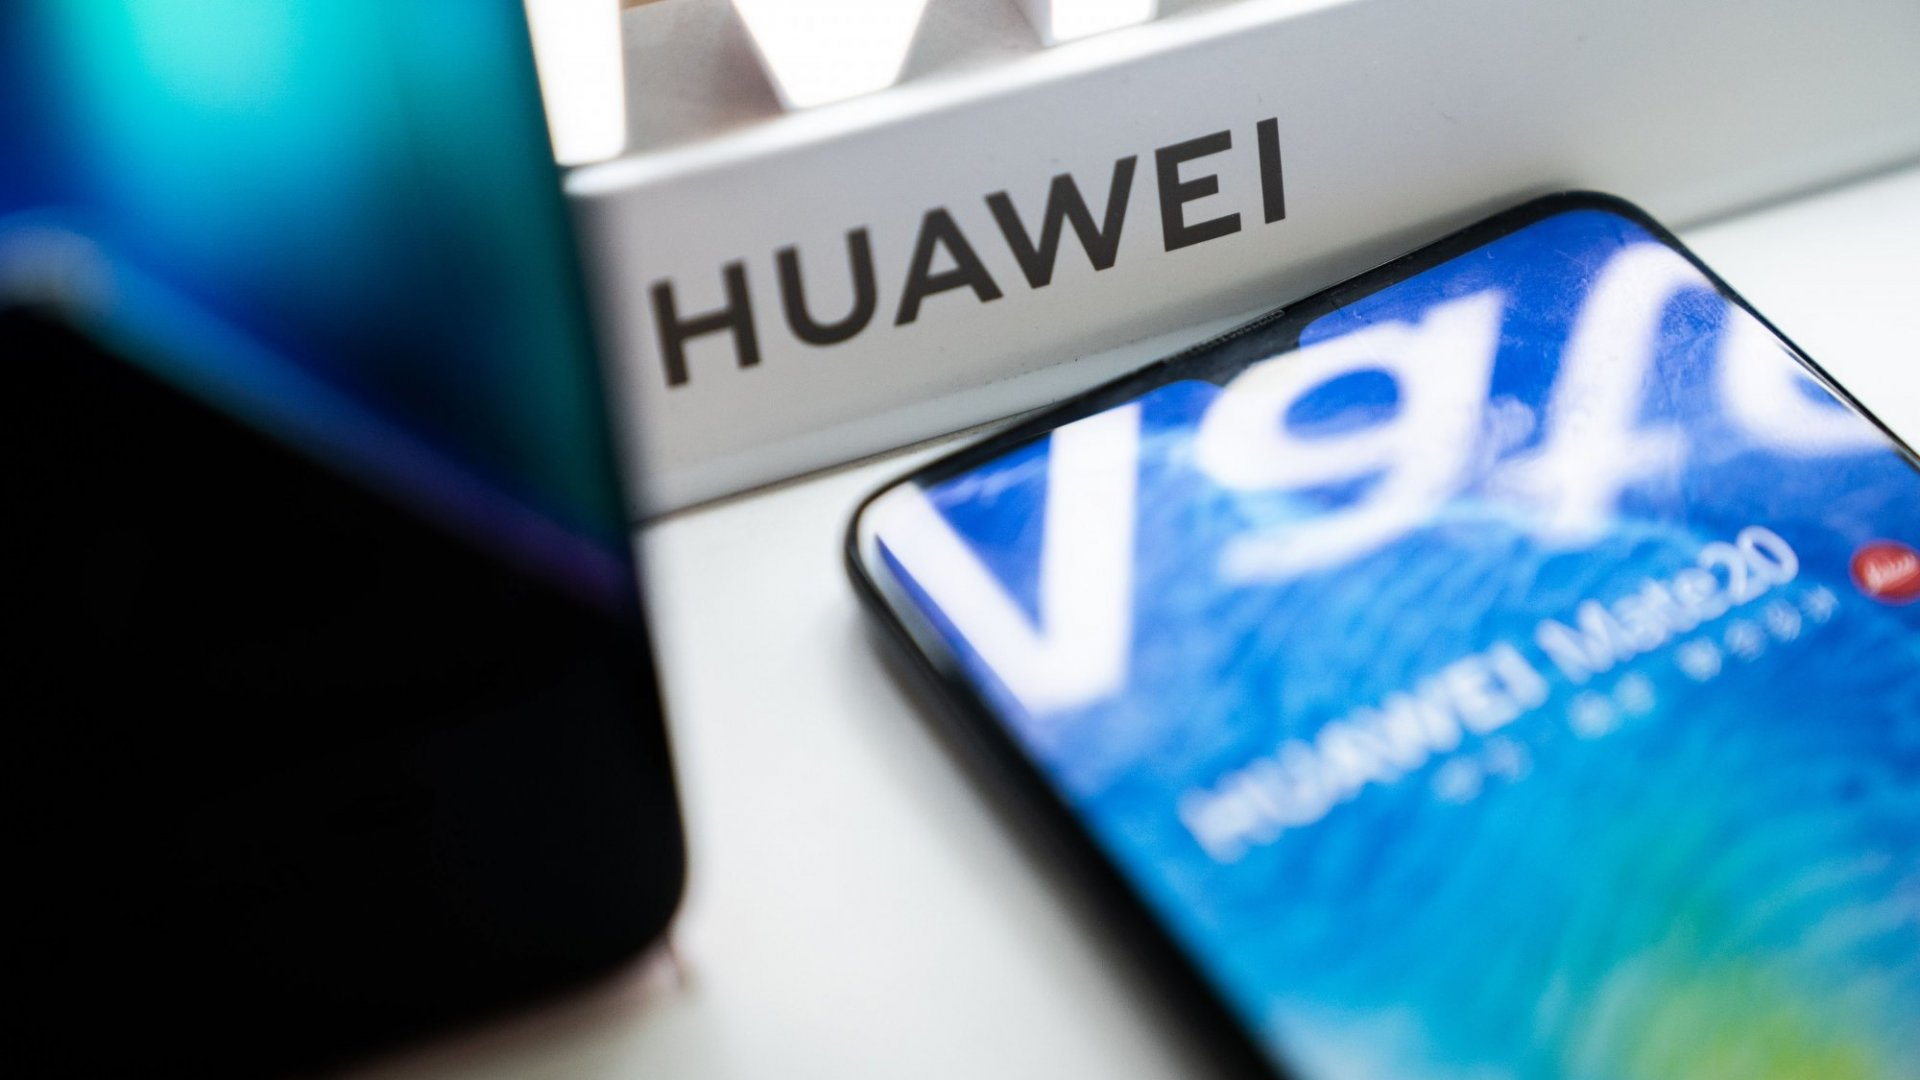 Google SeversBusinessTies With Huawei Following an Executive Order From President Trump